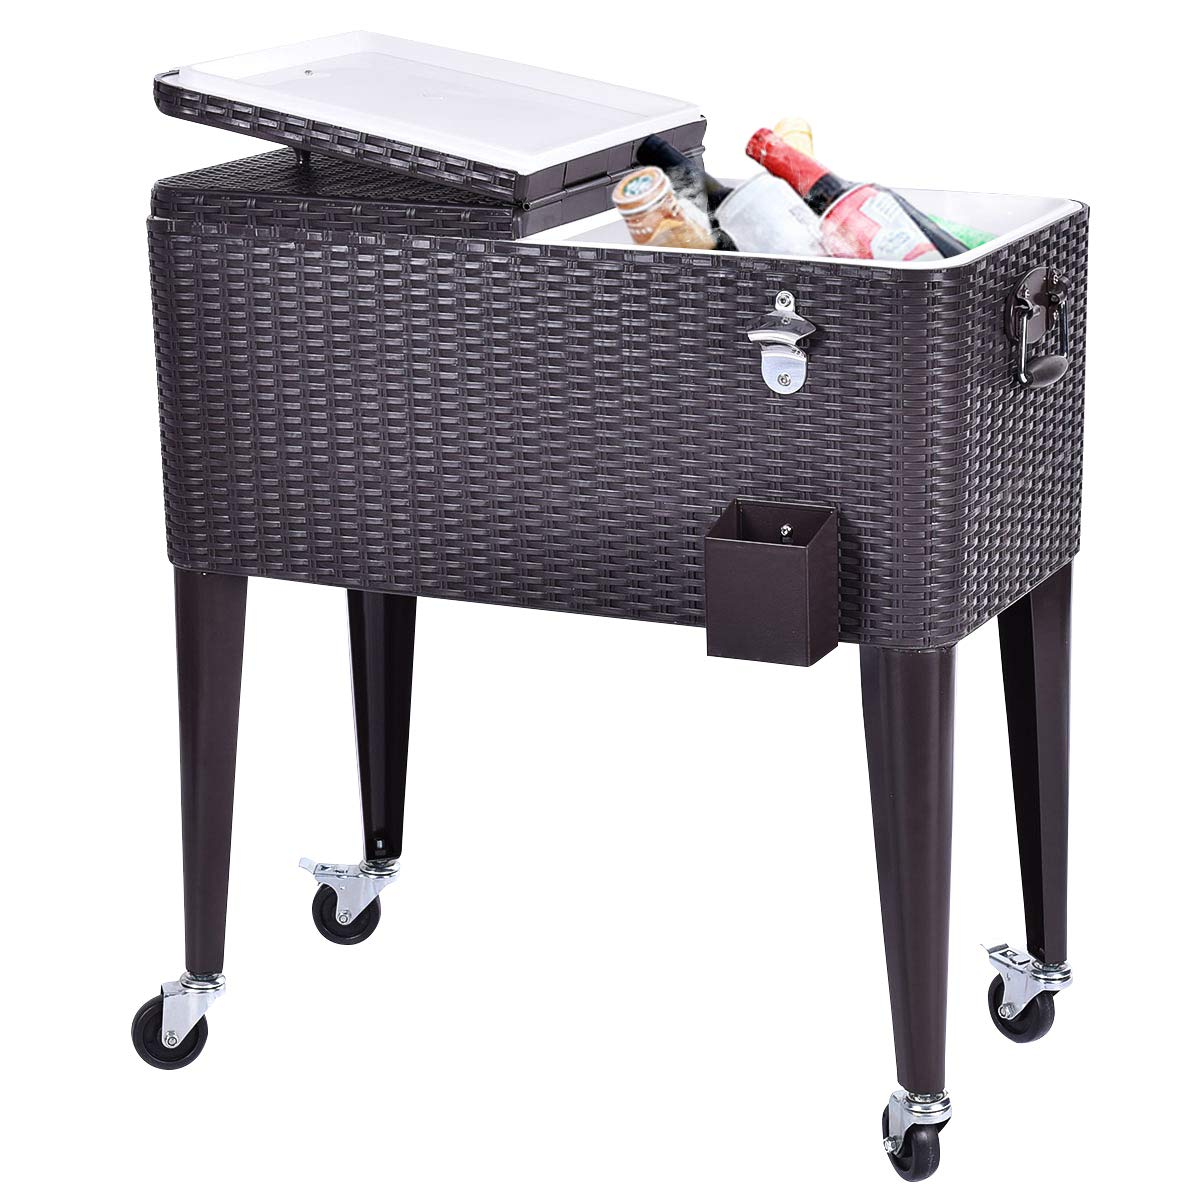 Giantex 80 Quart Rattan Rolling Cooler Cart Outdoor Patio Portable Party Drink Beverage Bar Cold Beach Chest Cart on Wheels, Brown Wicker